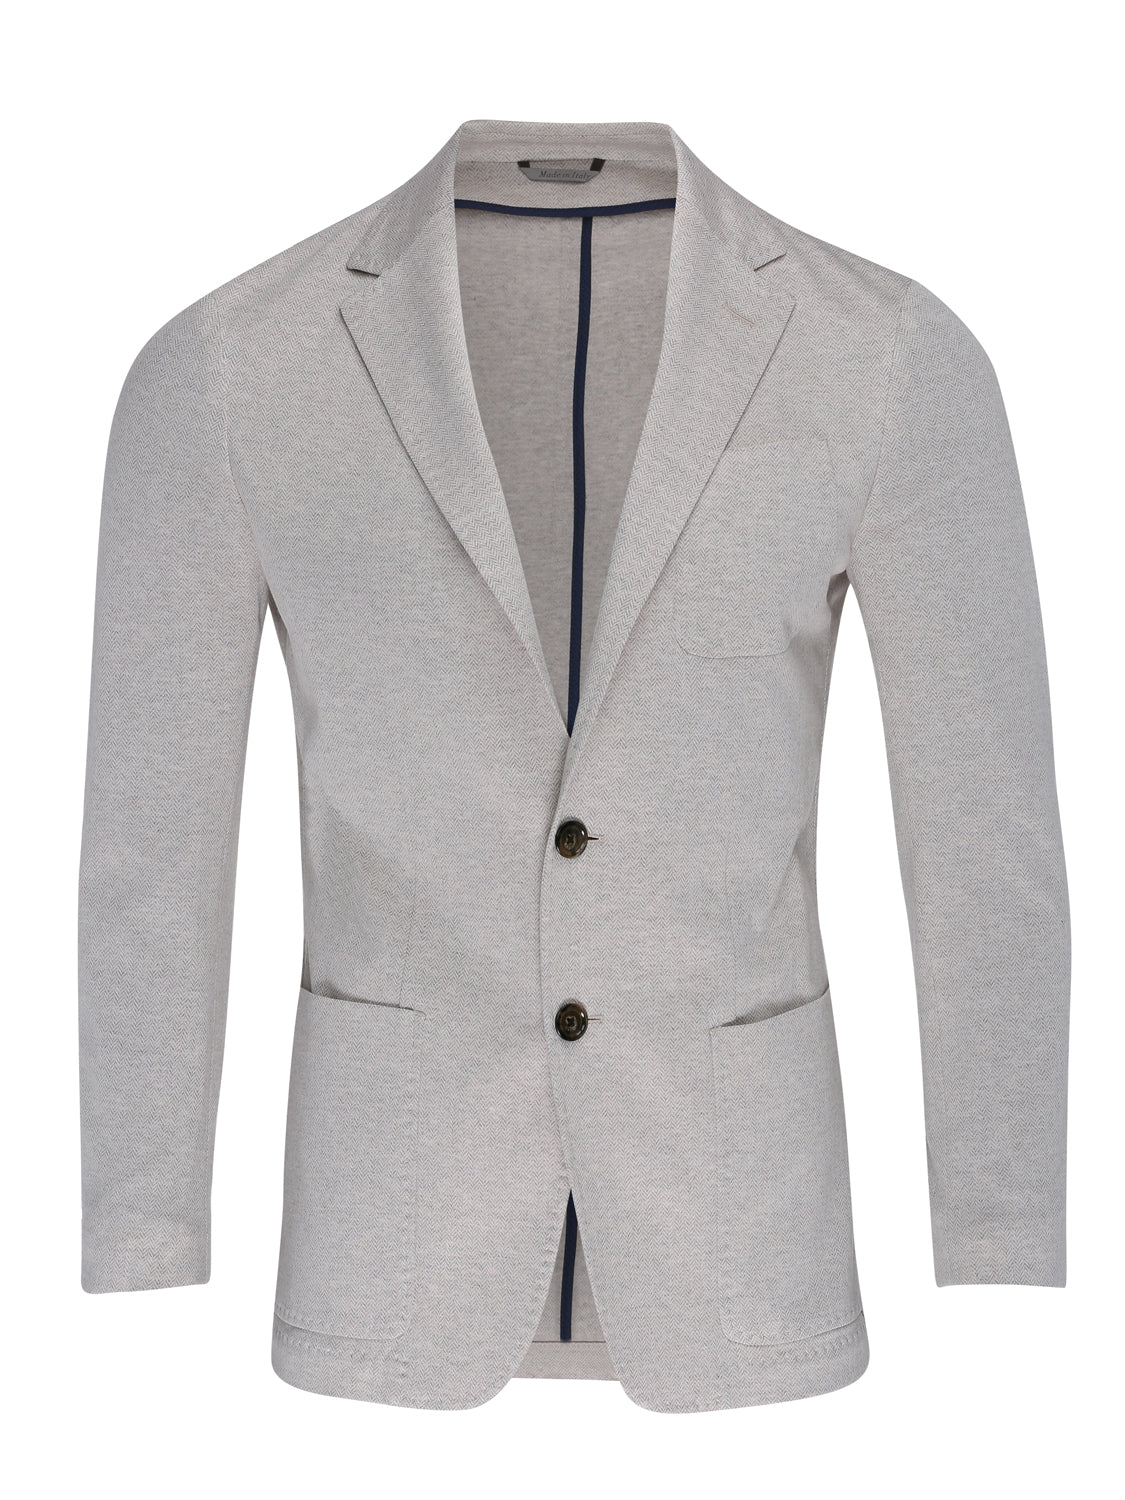 Canali Herringbone Blazer (Cream) - Union 22